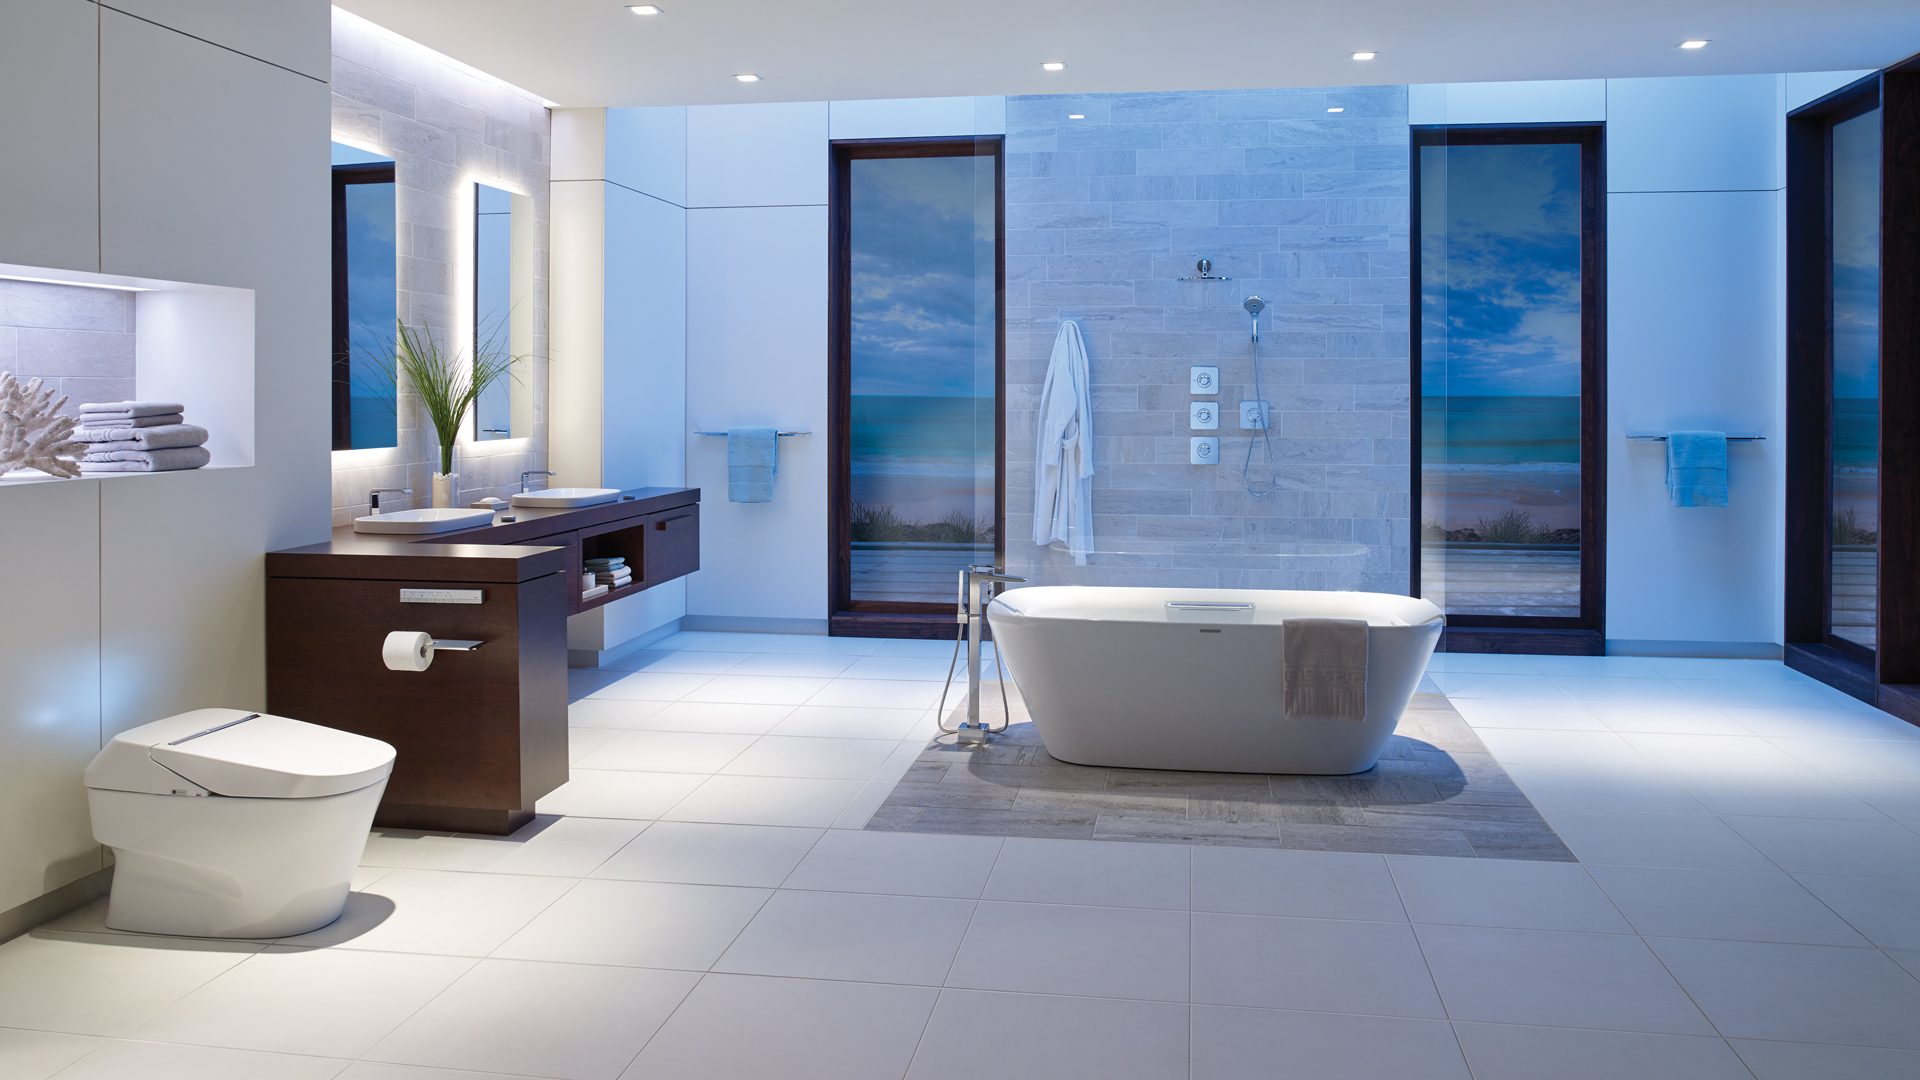 Why Need Smart Toilet for Your Bathroom